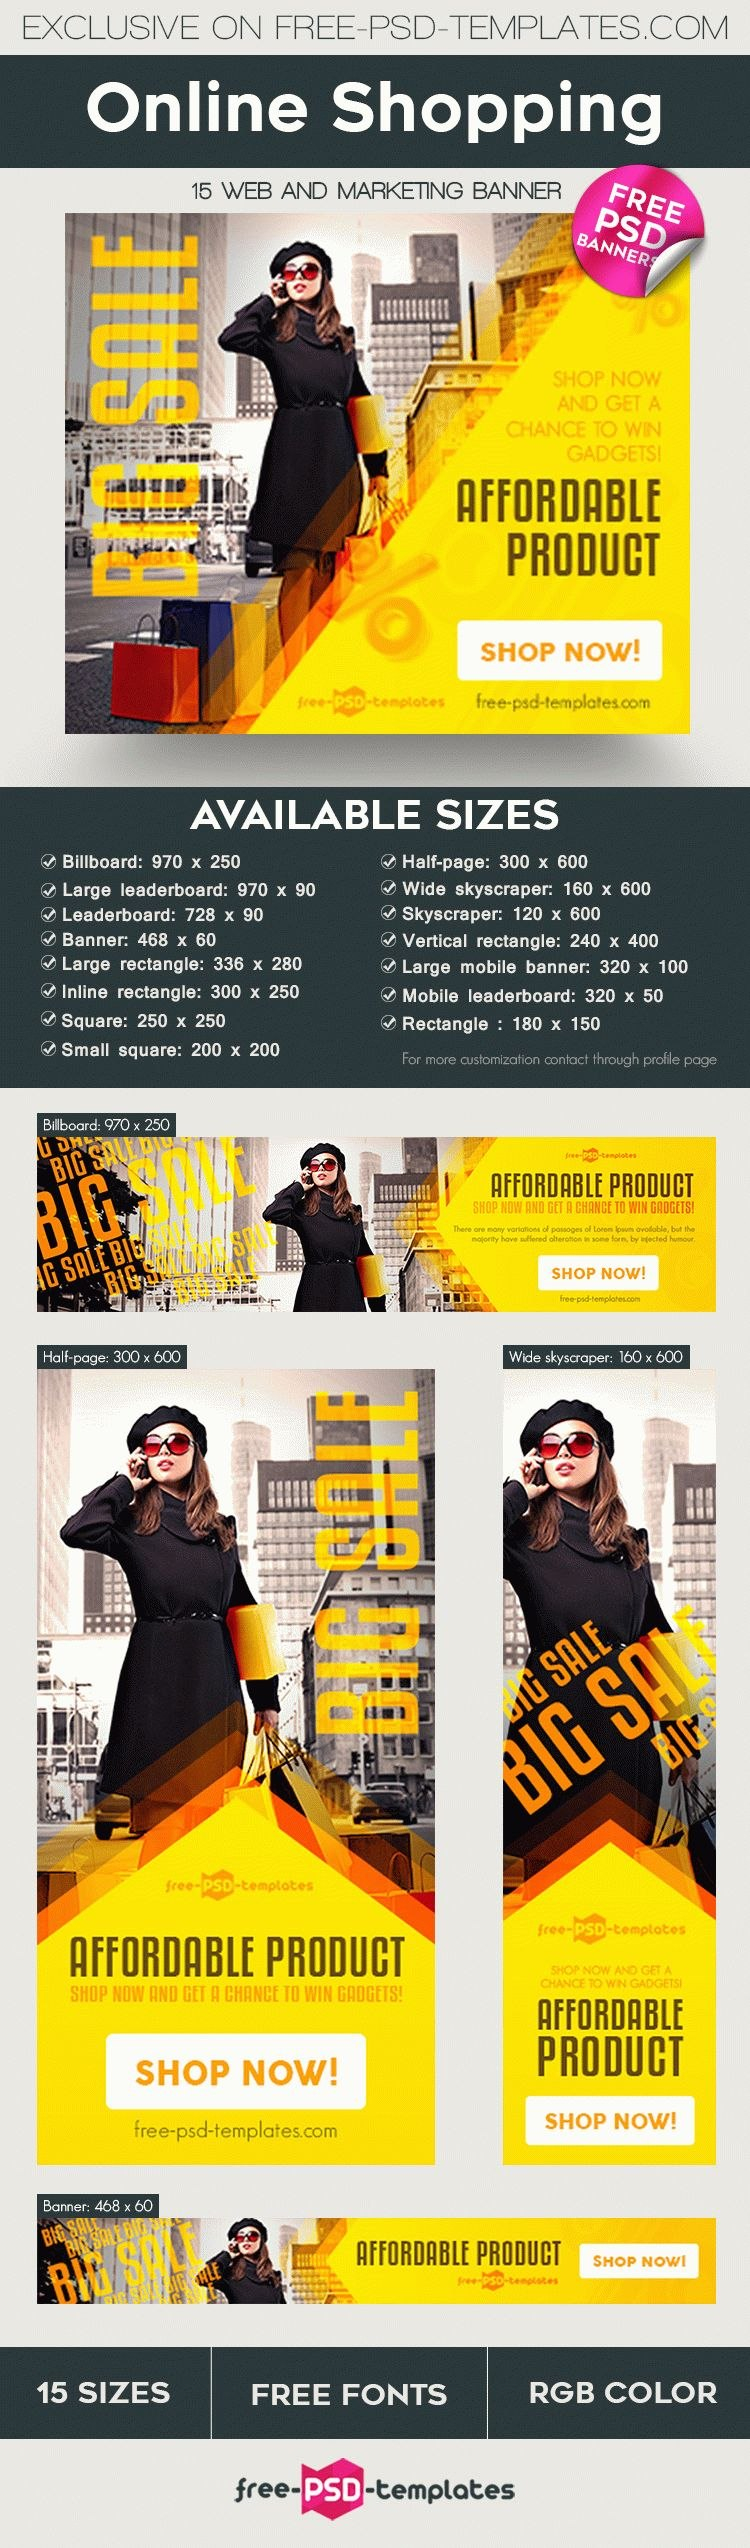 Free Online Shopping Banner In Psd  Free Psd Templates In Free Online Banner Templates